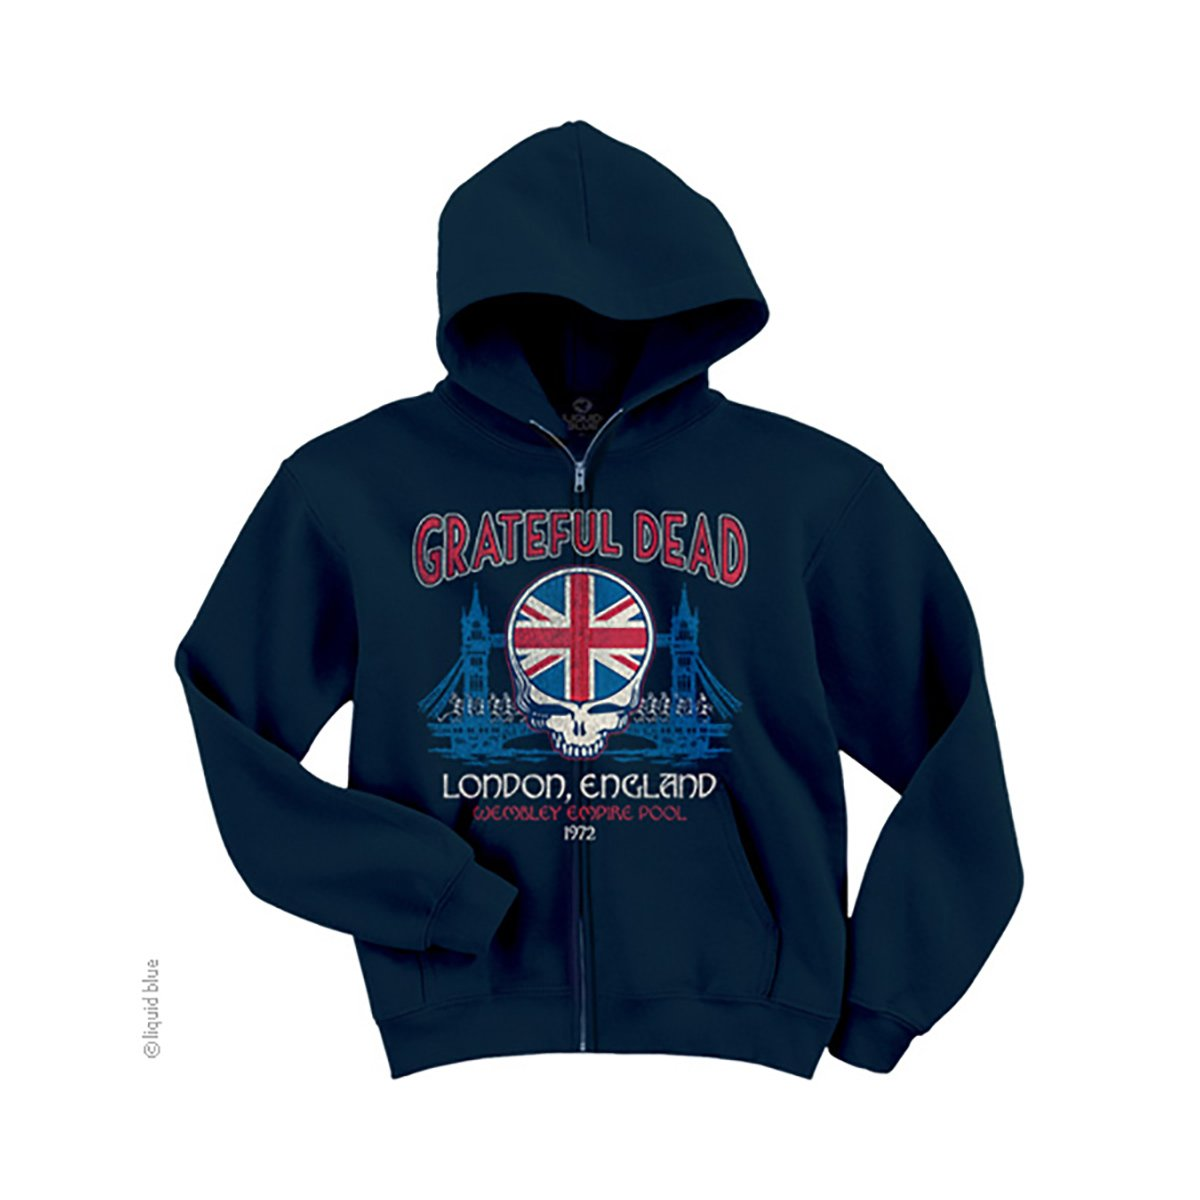 Grateful Dead Navy Blue Full Zip Hoodie, Wembley Empire Pool London 1972